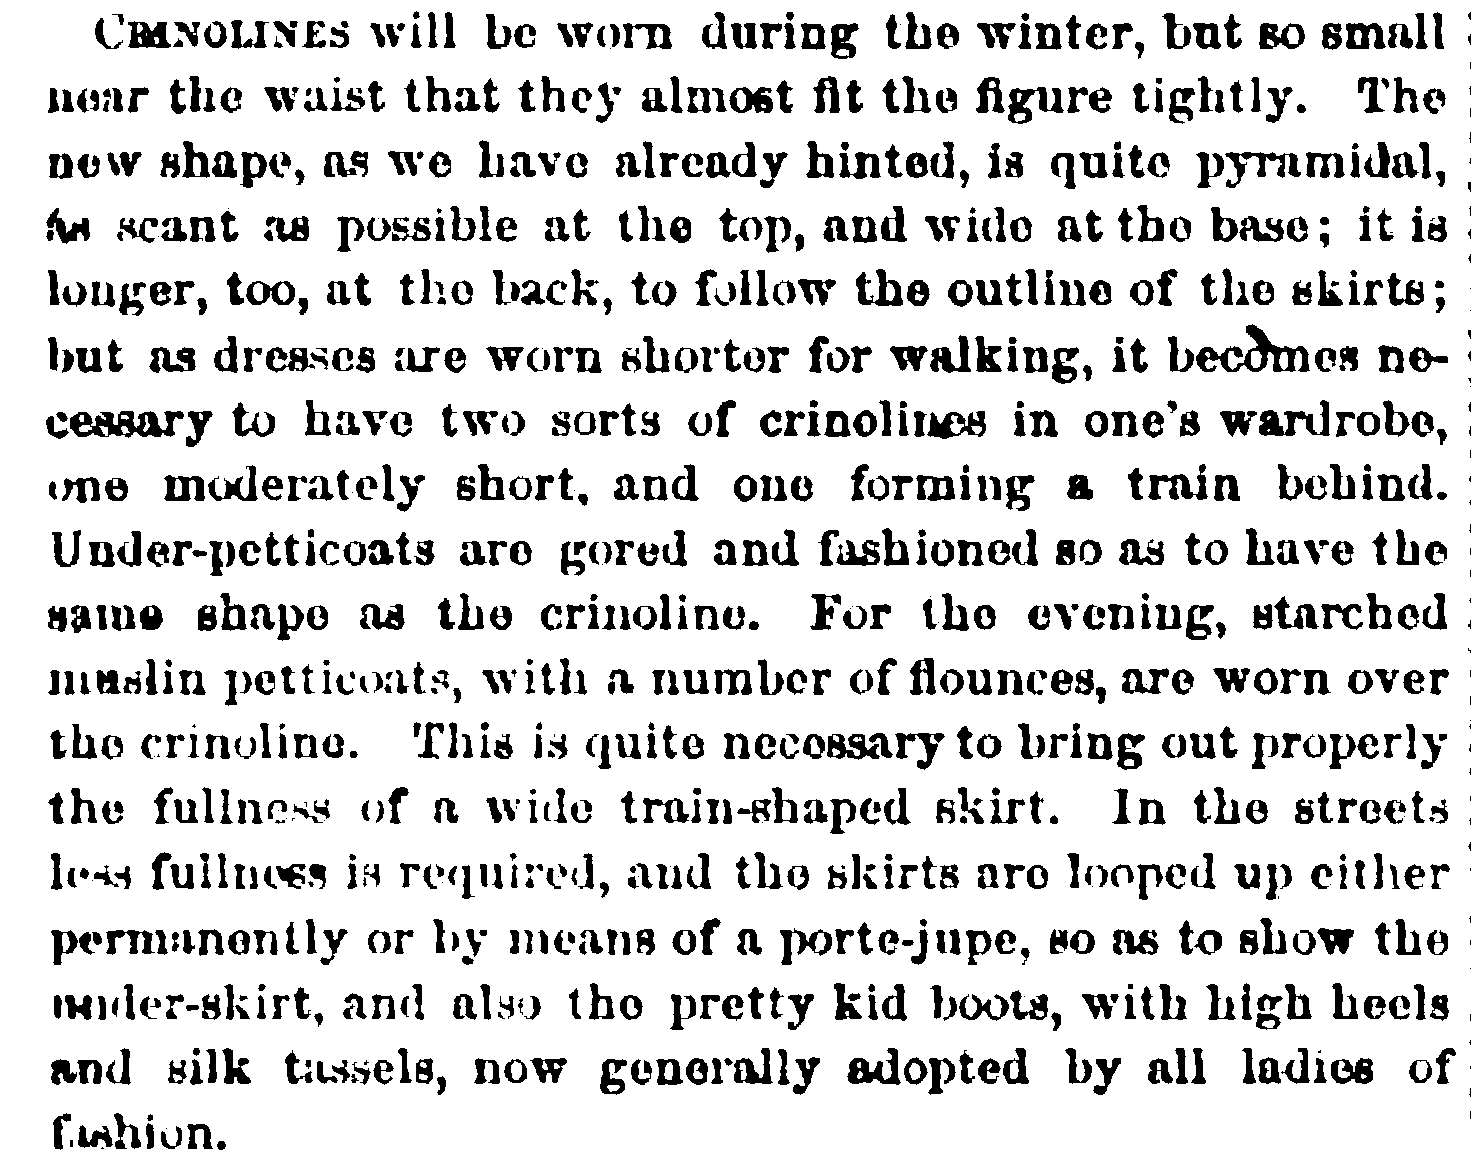 Crinoline description from Peterson's, February 1865.